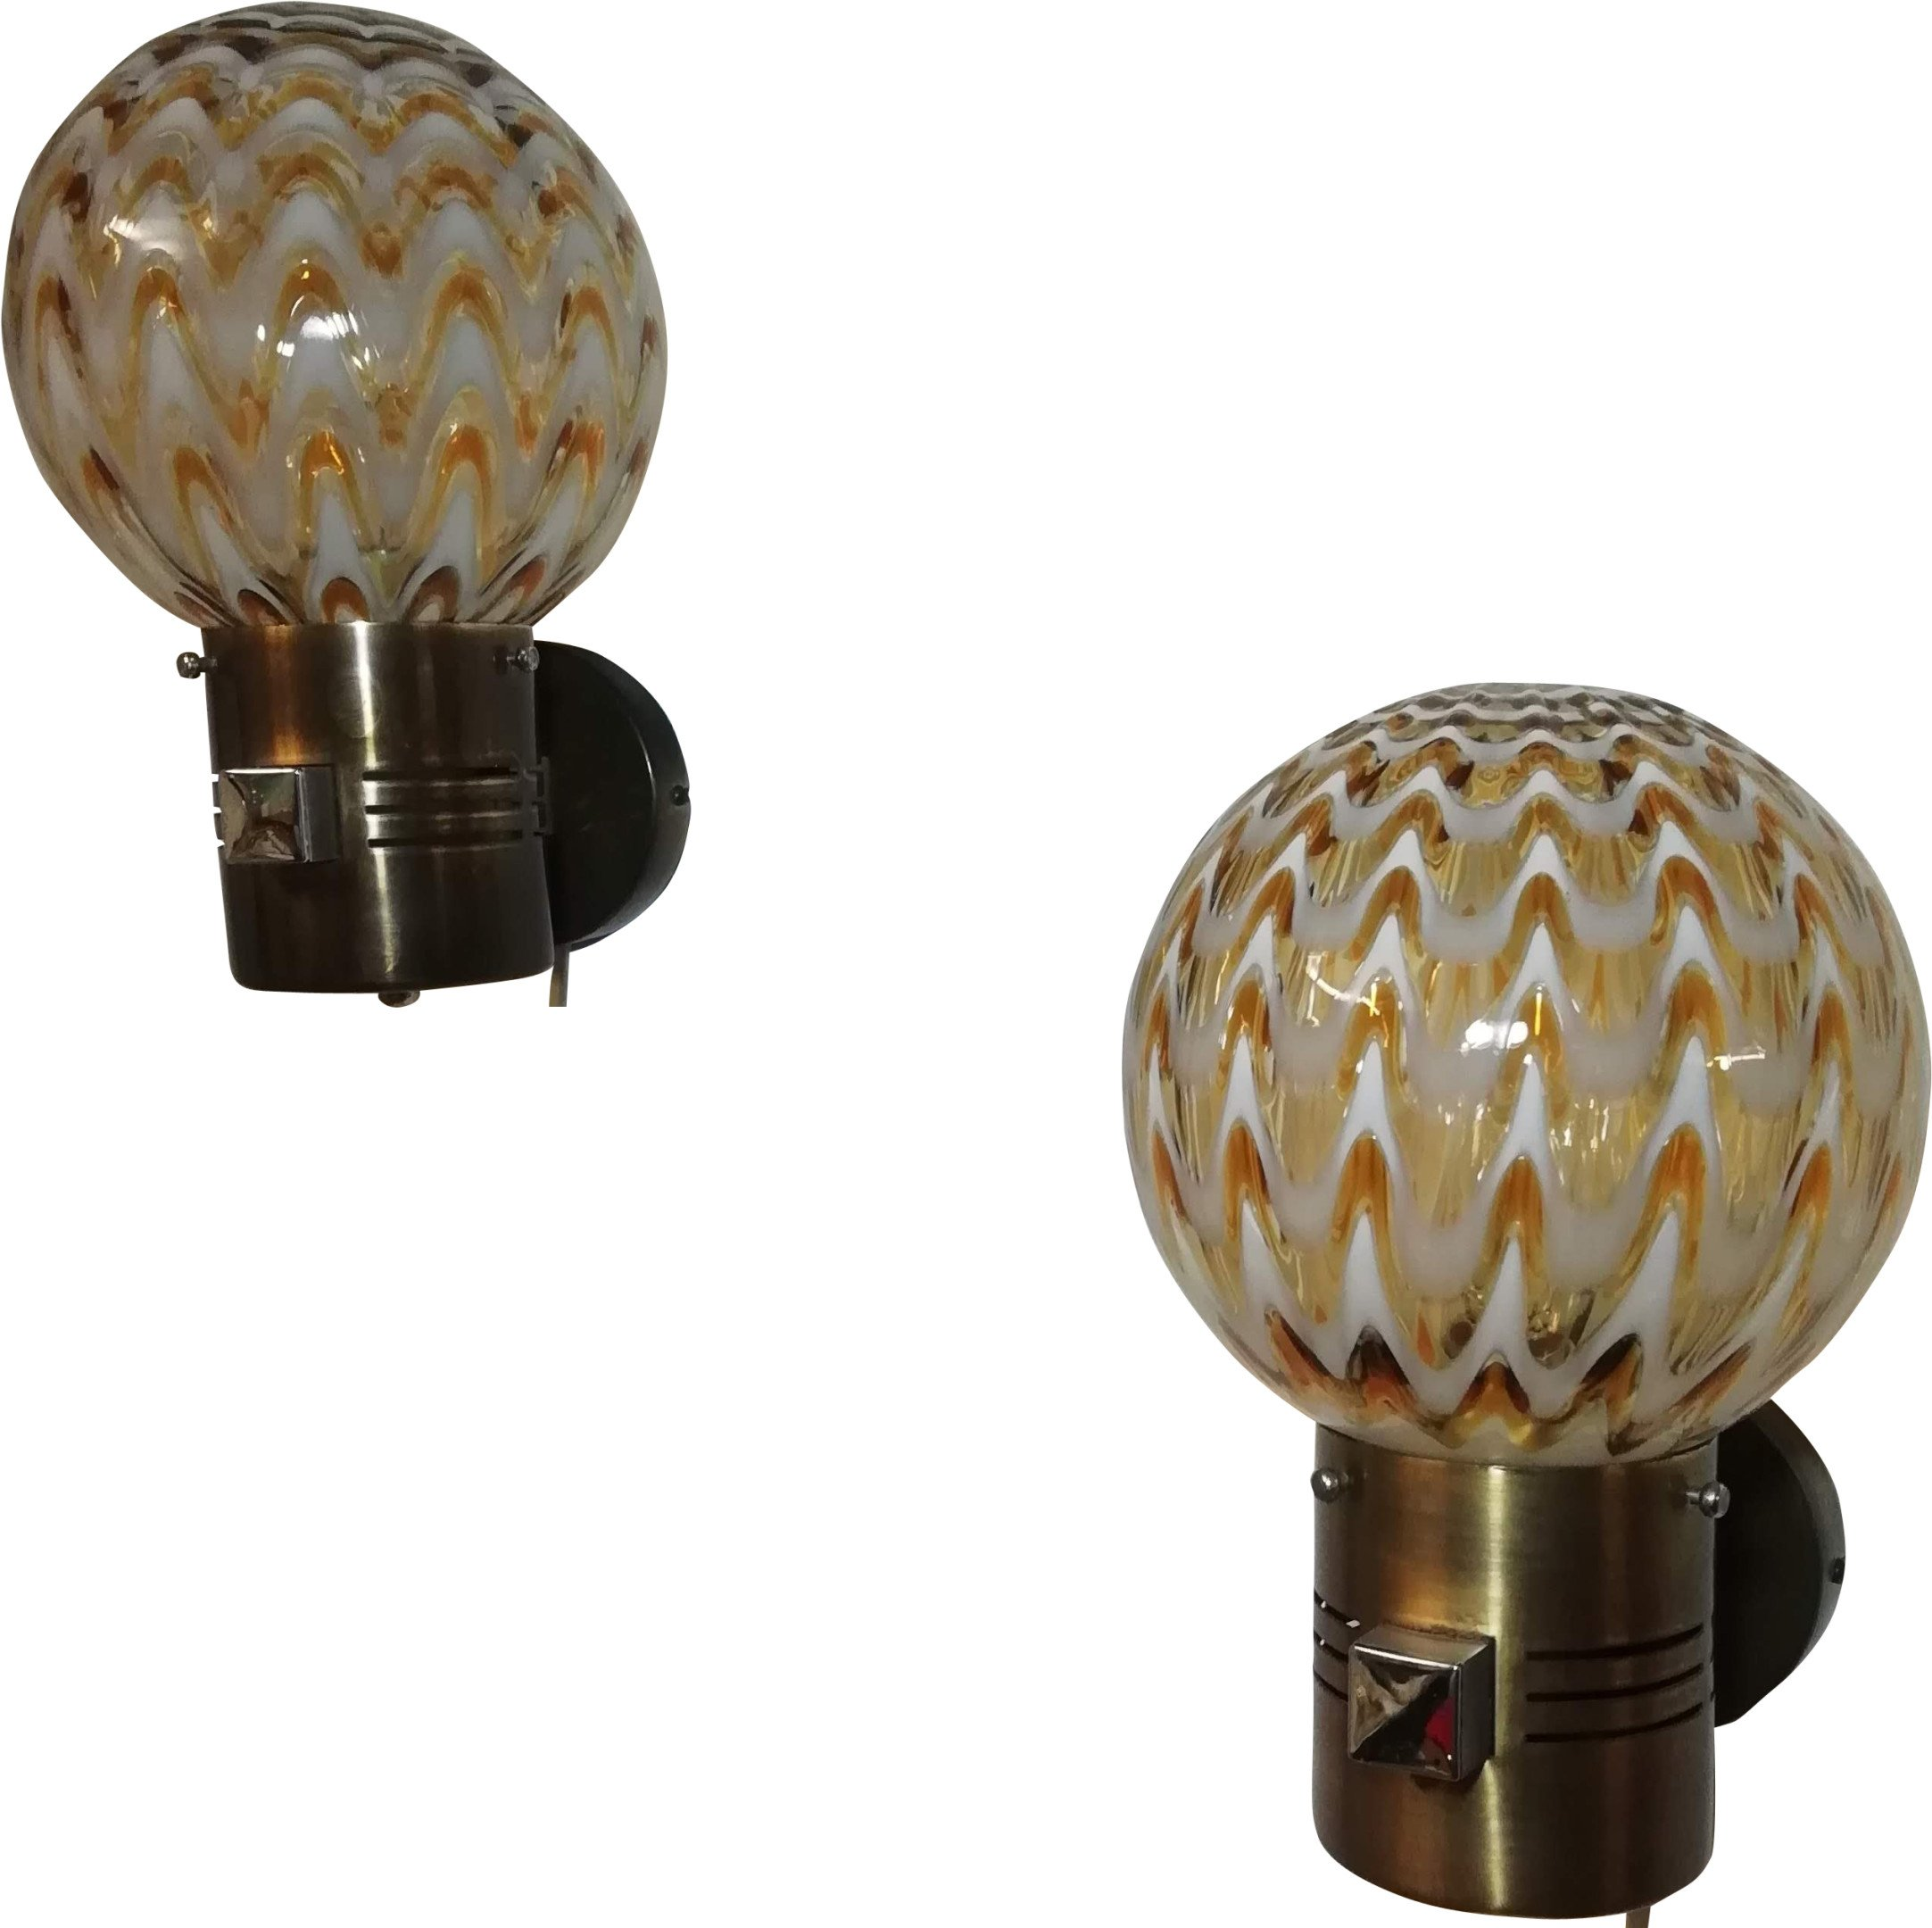 Paire of Murano glass wallsconces from Italy. 70s.